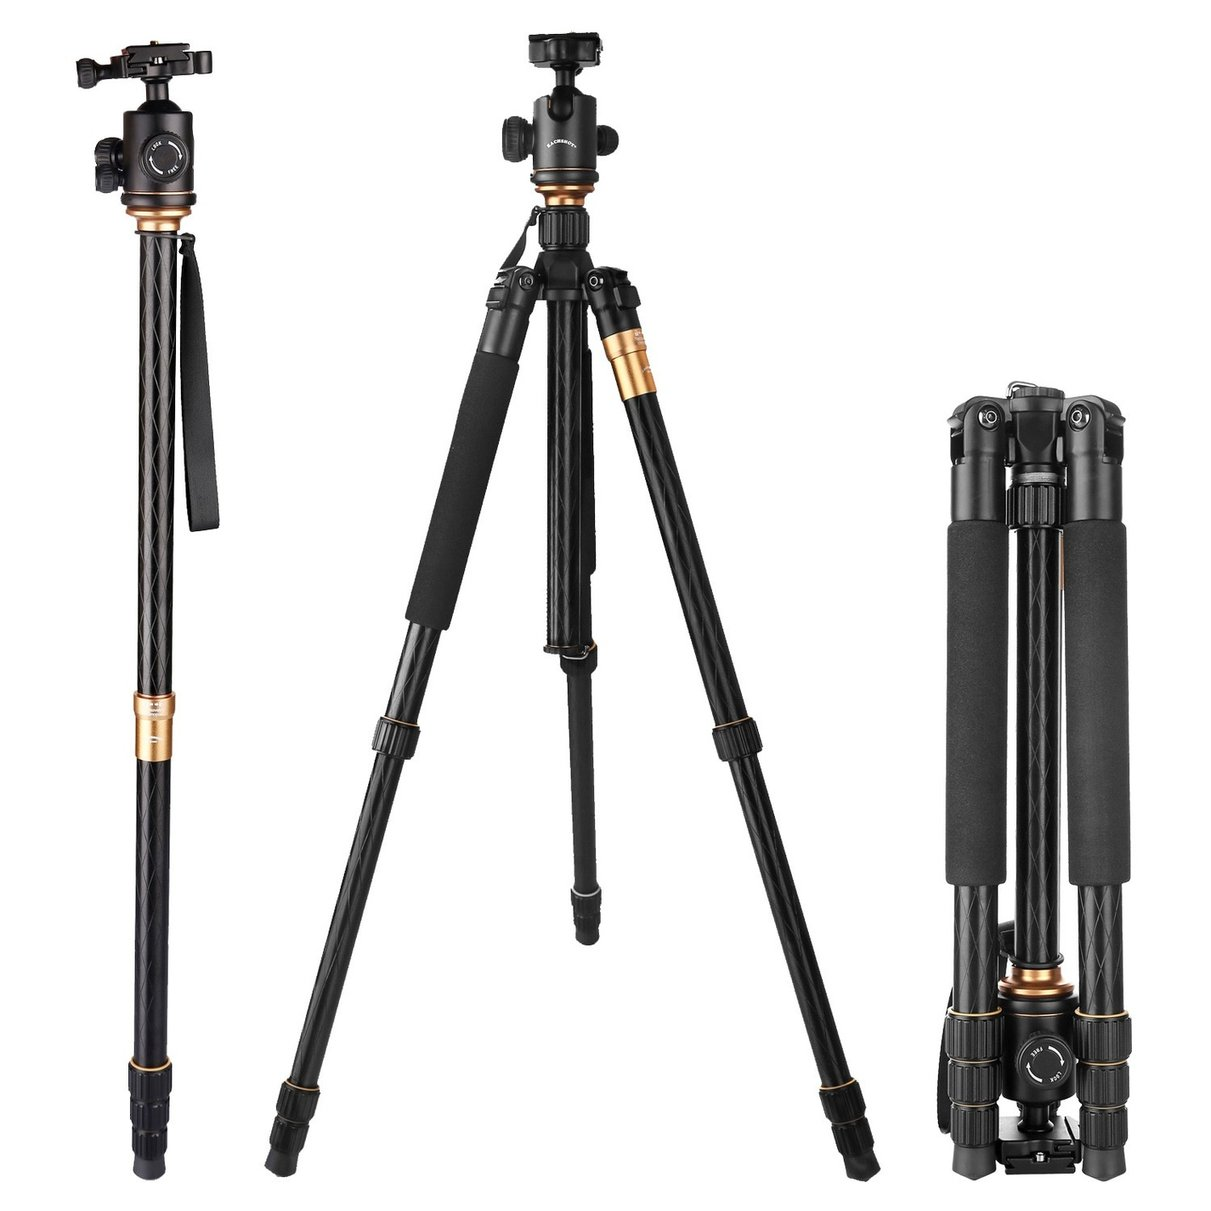 EACHSHOT Q999 Photographic Portable Tripod To Monopod+Ball Head For Digital SLR DSLR Camera Fold 43cm Max Loading 15Kg zomei z888 portable stable magnesium alloy digital camera tripod monopod ball head for digital slr dslr camera